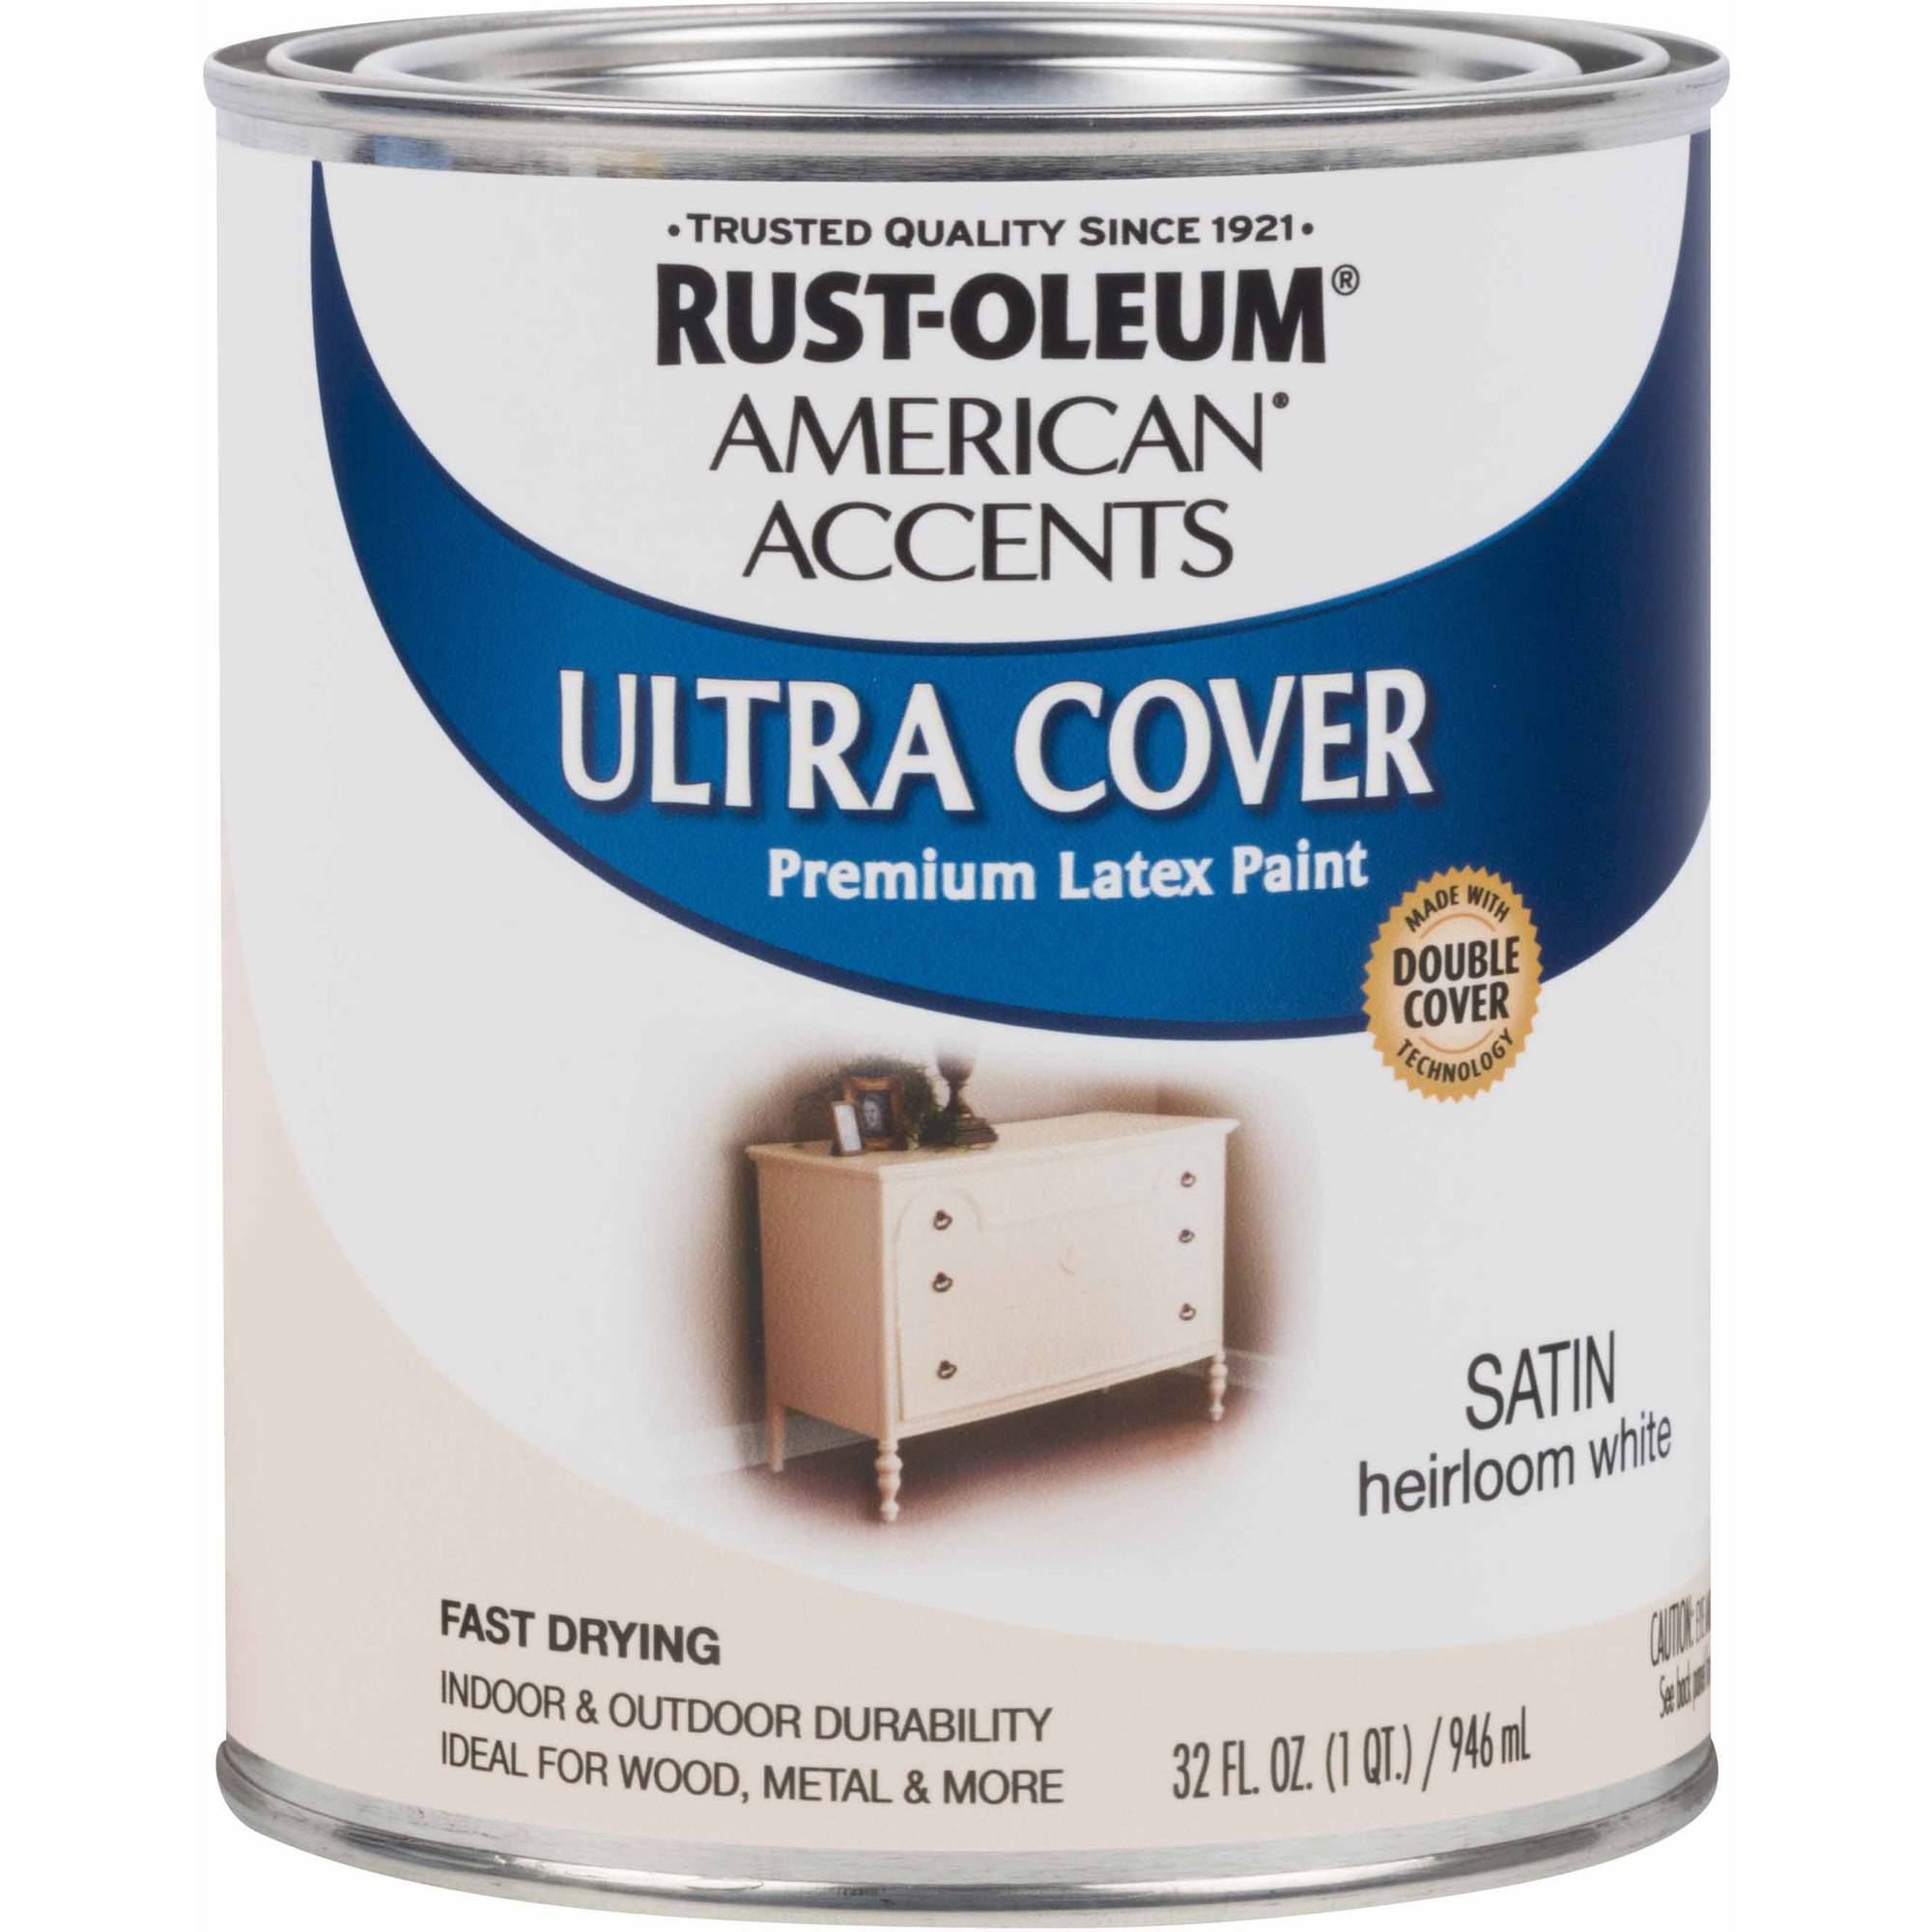 Rust-Oleum American Accents Ultra Cover Quart, Satin Heirloom White